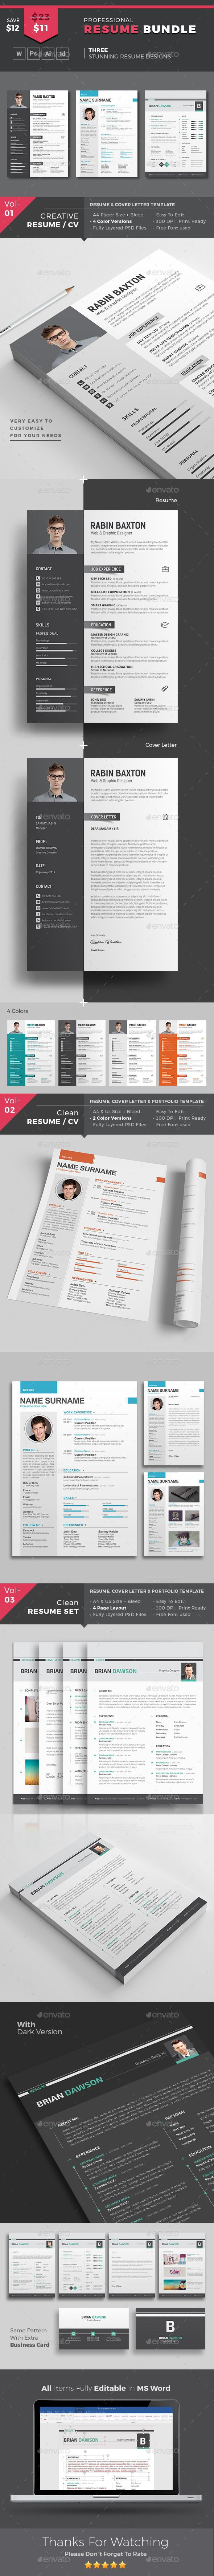 MS Word Resume Template Bundle | Super Saver | PSD + AI + INDD/IDML + Word | Instant Download | Step by step customization Tutorial Included with Screen Shots | Free Business Card Template